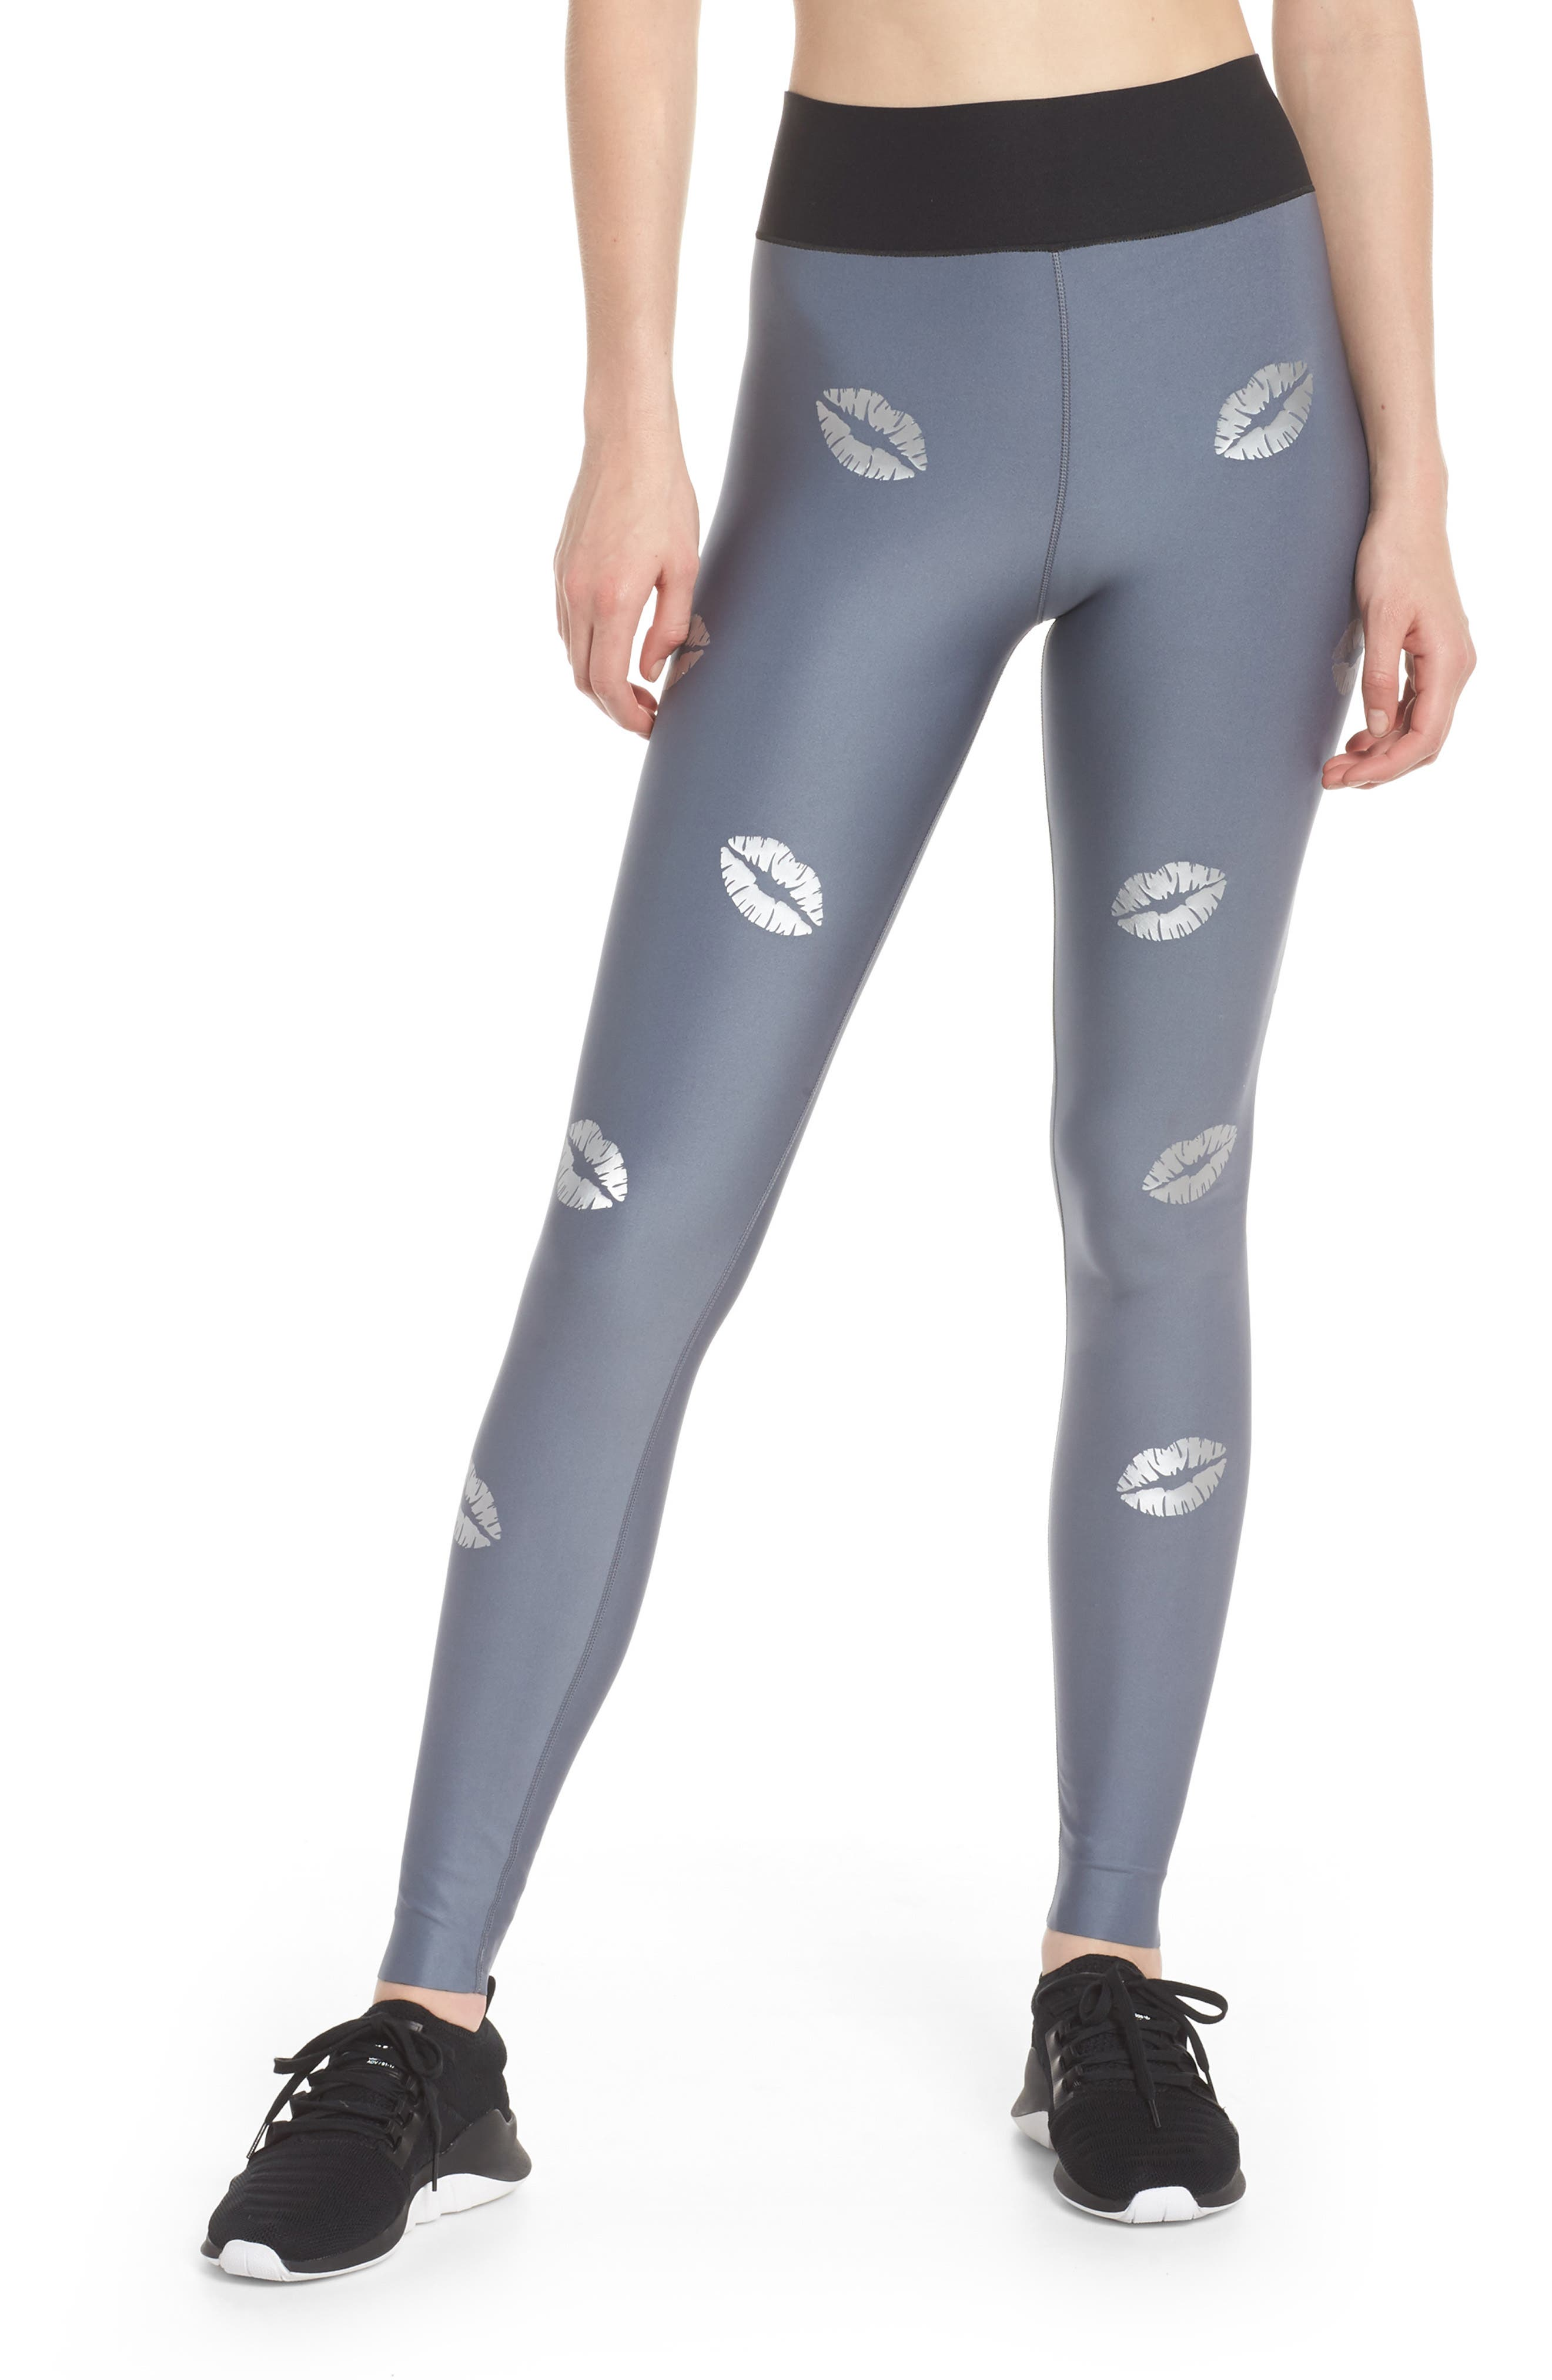 Ultracor Make Out Lux High Waist Leggings